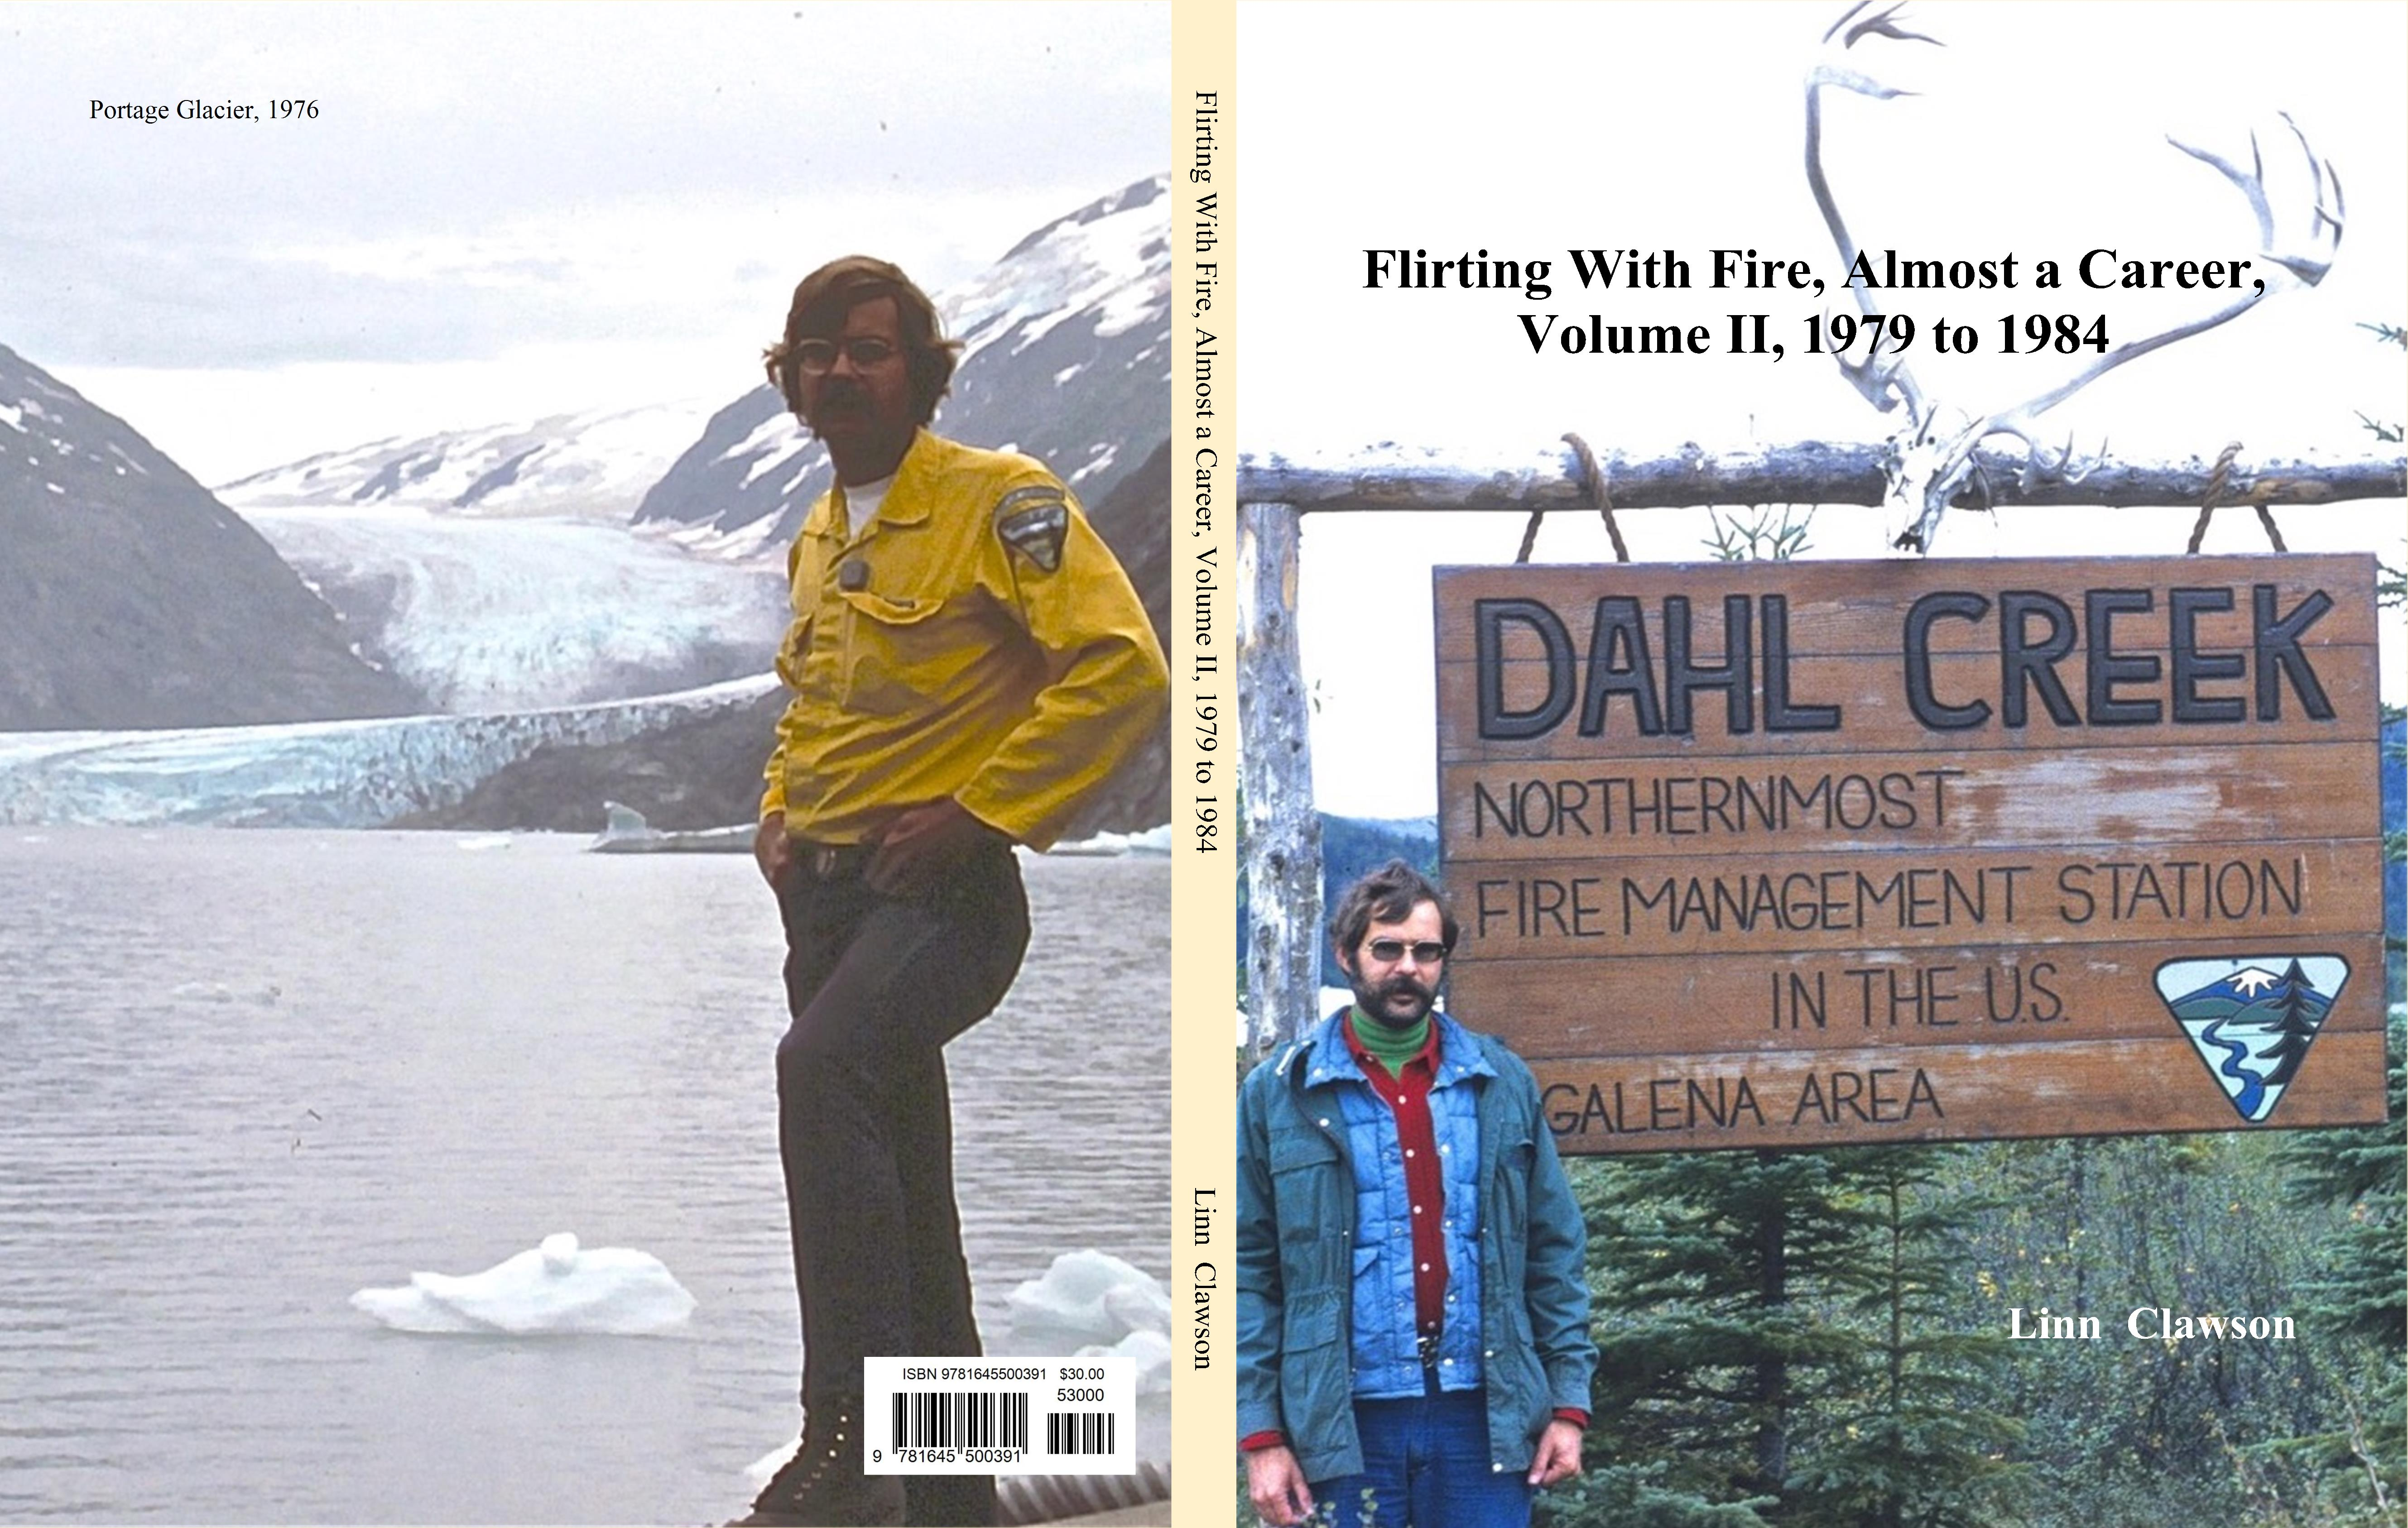 Flirting With Fire, Almost a Career, Volume II, 1979 to 1984 cover image